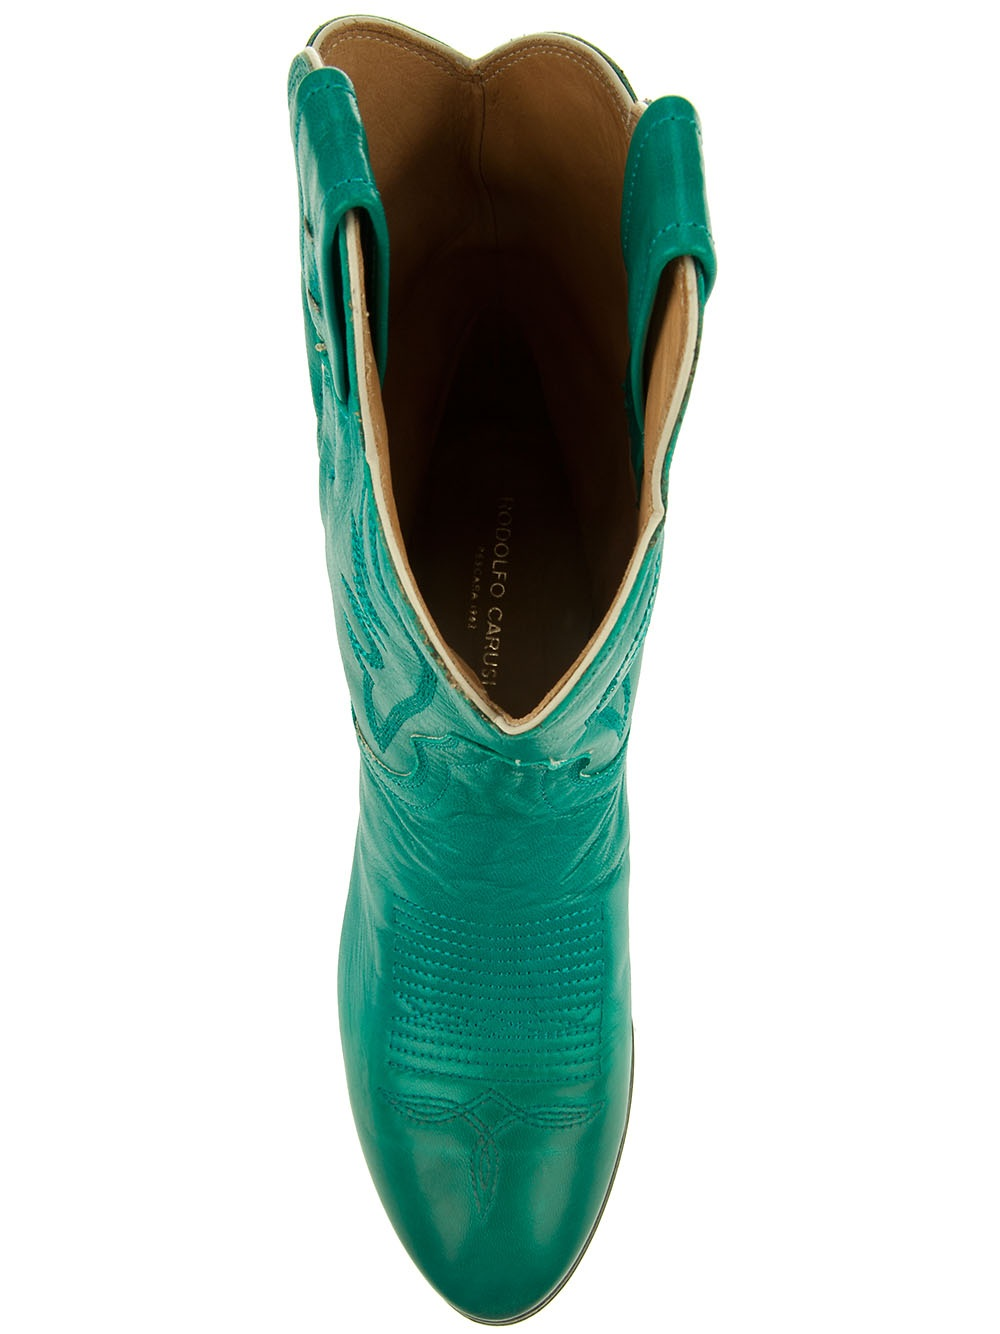 Rodolfo Carusi Cowboy Boot in Turquoise (Blue)